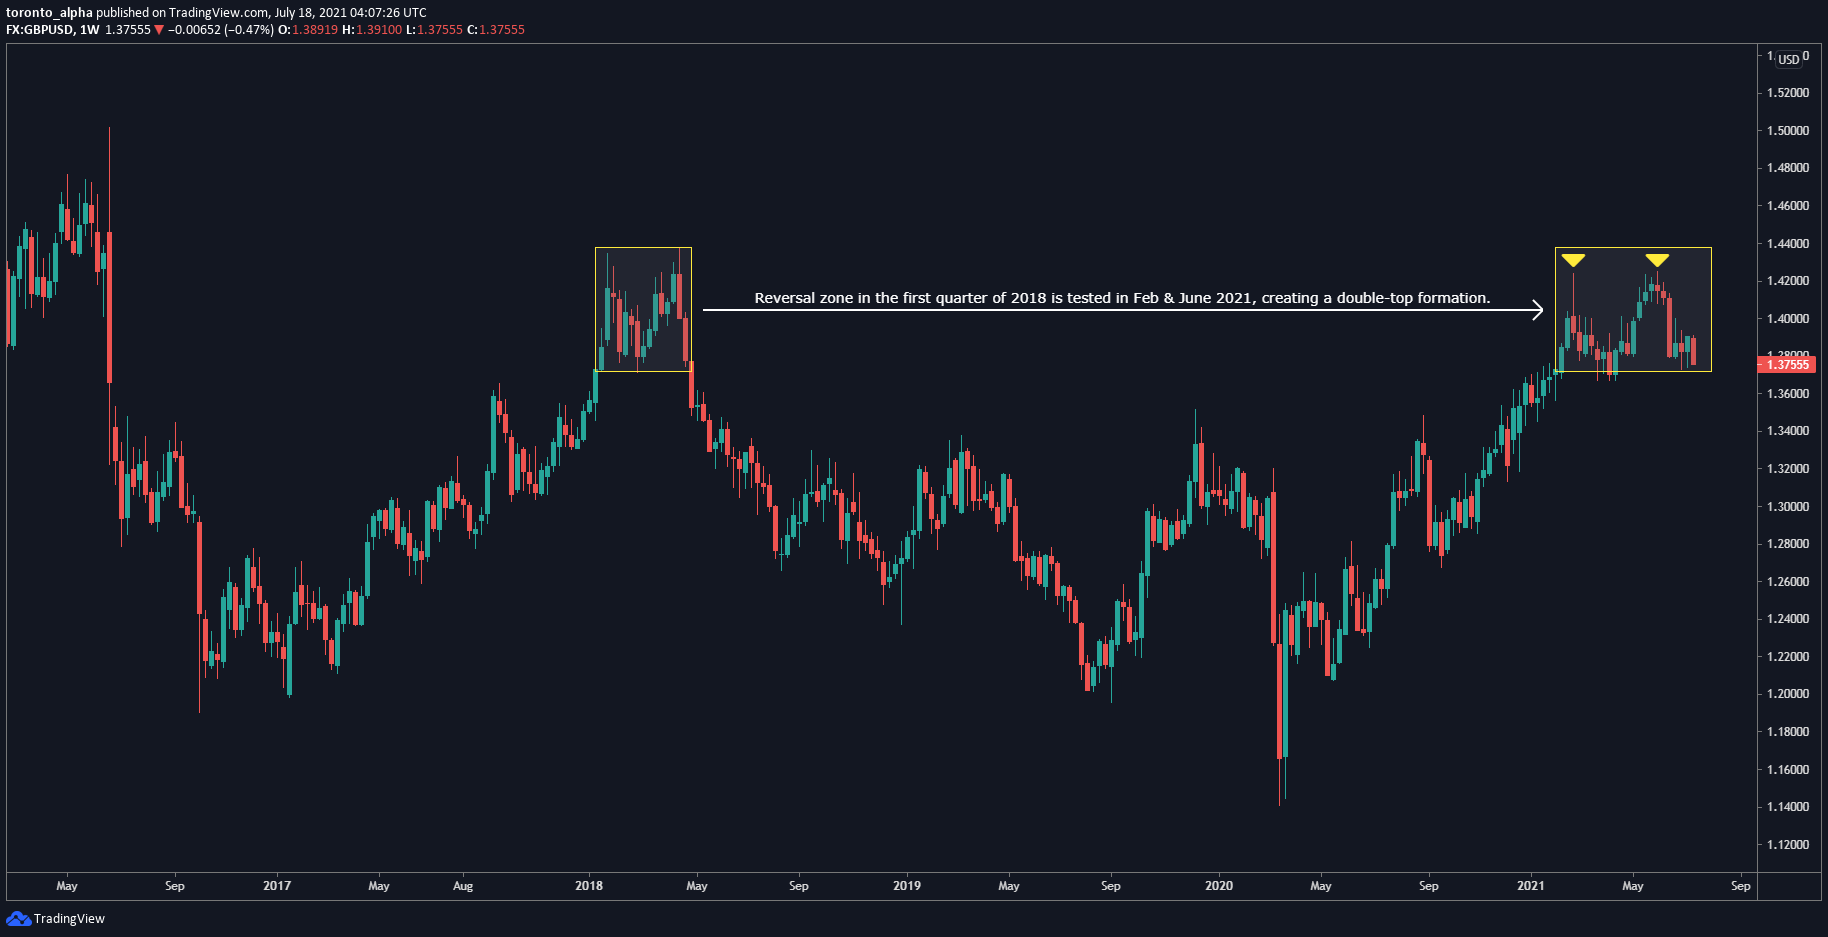 GBP / USD weekly chart